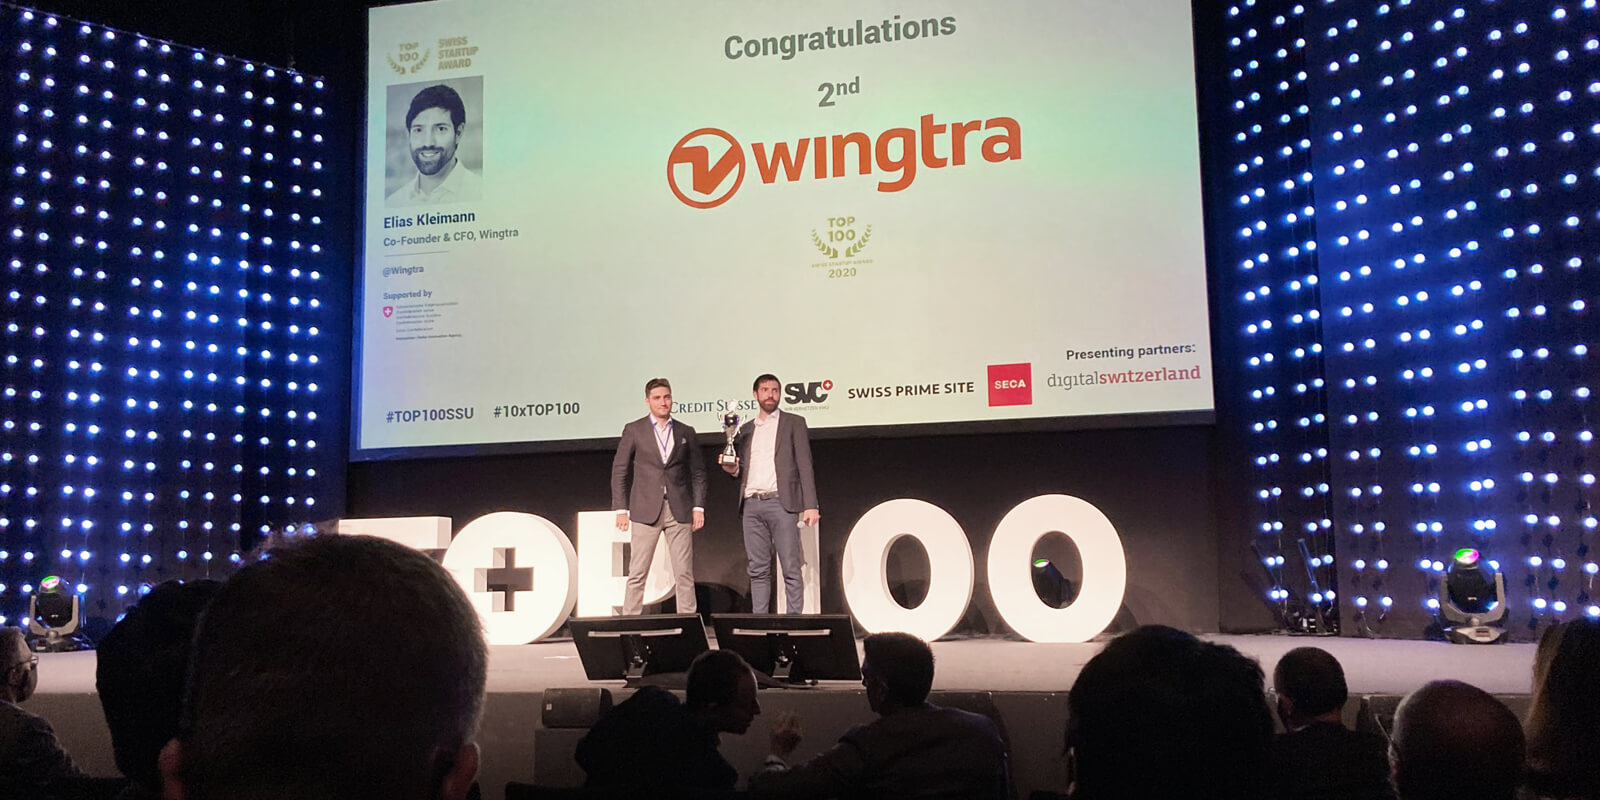 Elias Kleinmann, Wingtra CTO, accepting award